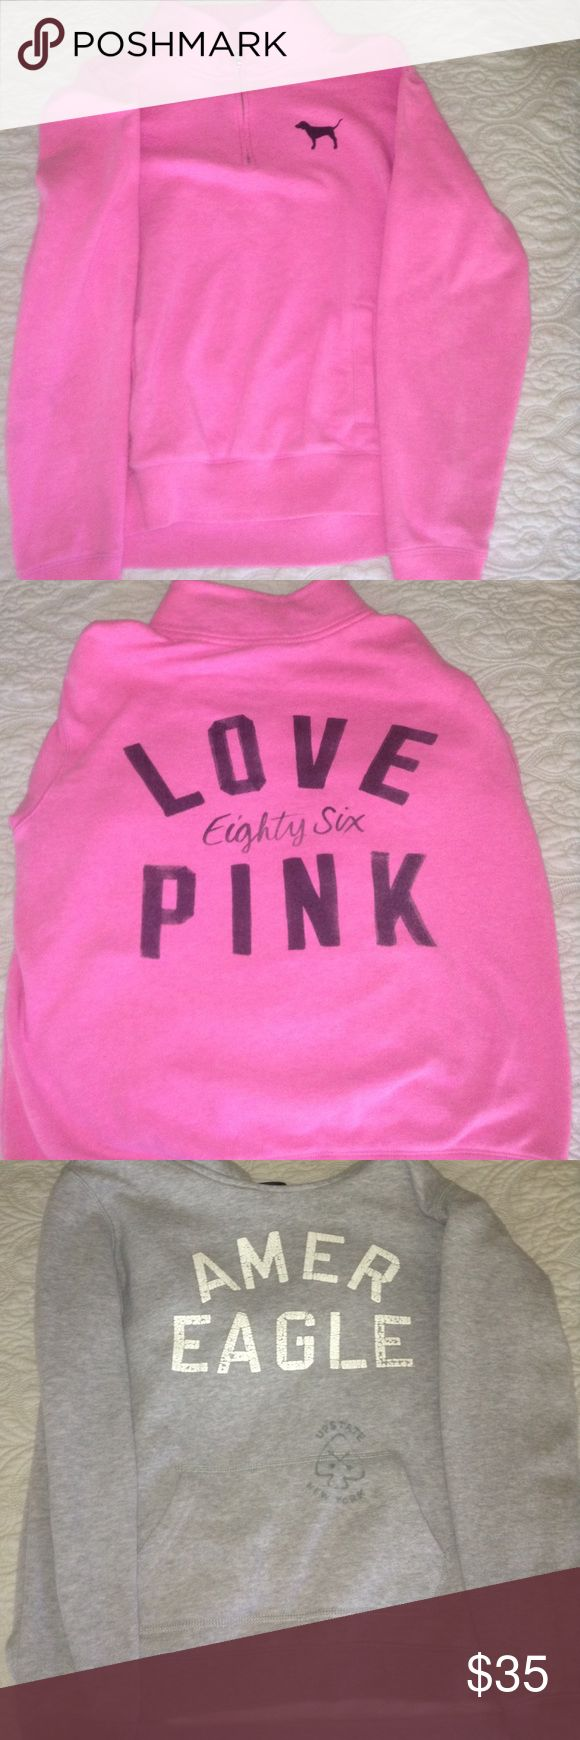 A pink PINK and grey American eagle sweatshirts! The first one is pink with black writing  with a zip up collar. And the second one is grey with white writing and a collar. Other